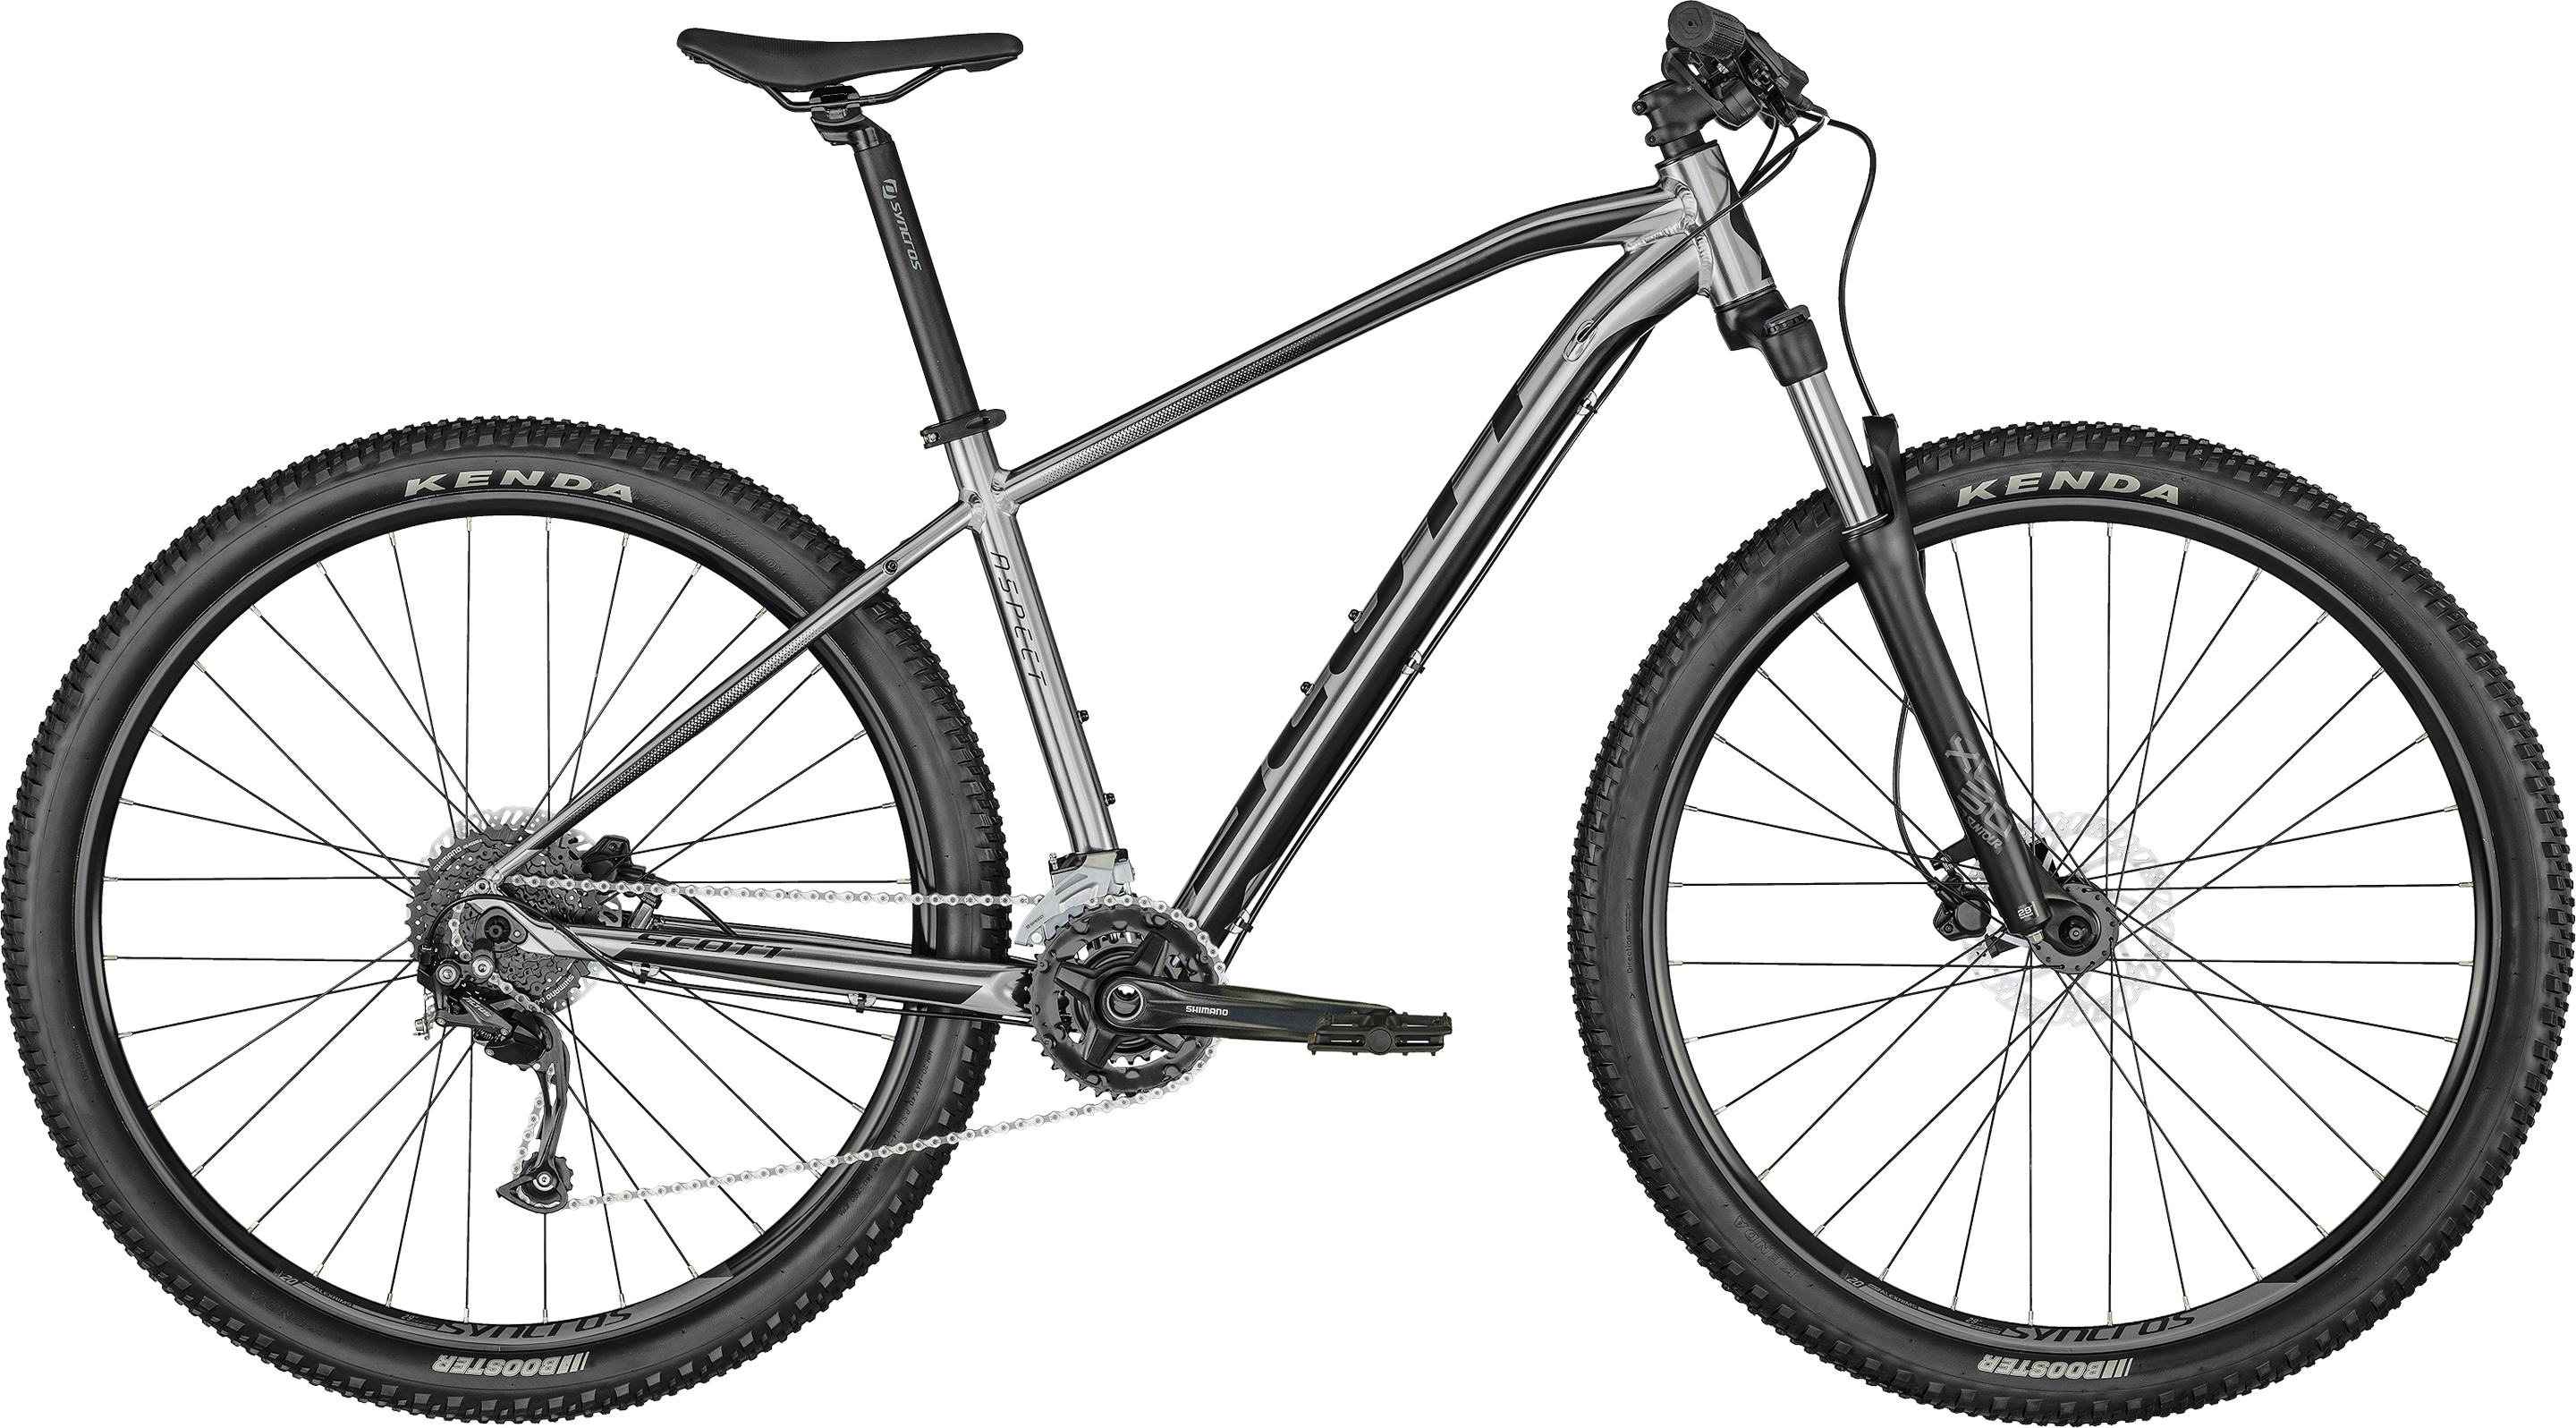 Aspect 750 slate grey | Culture Vélo